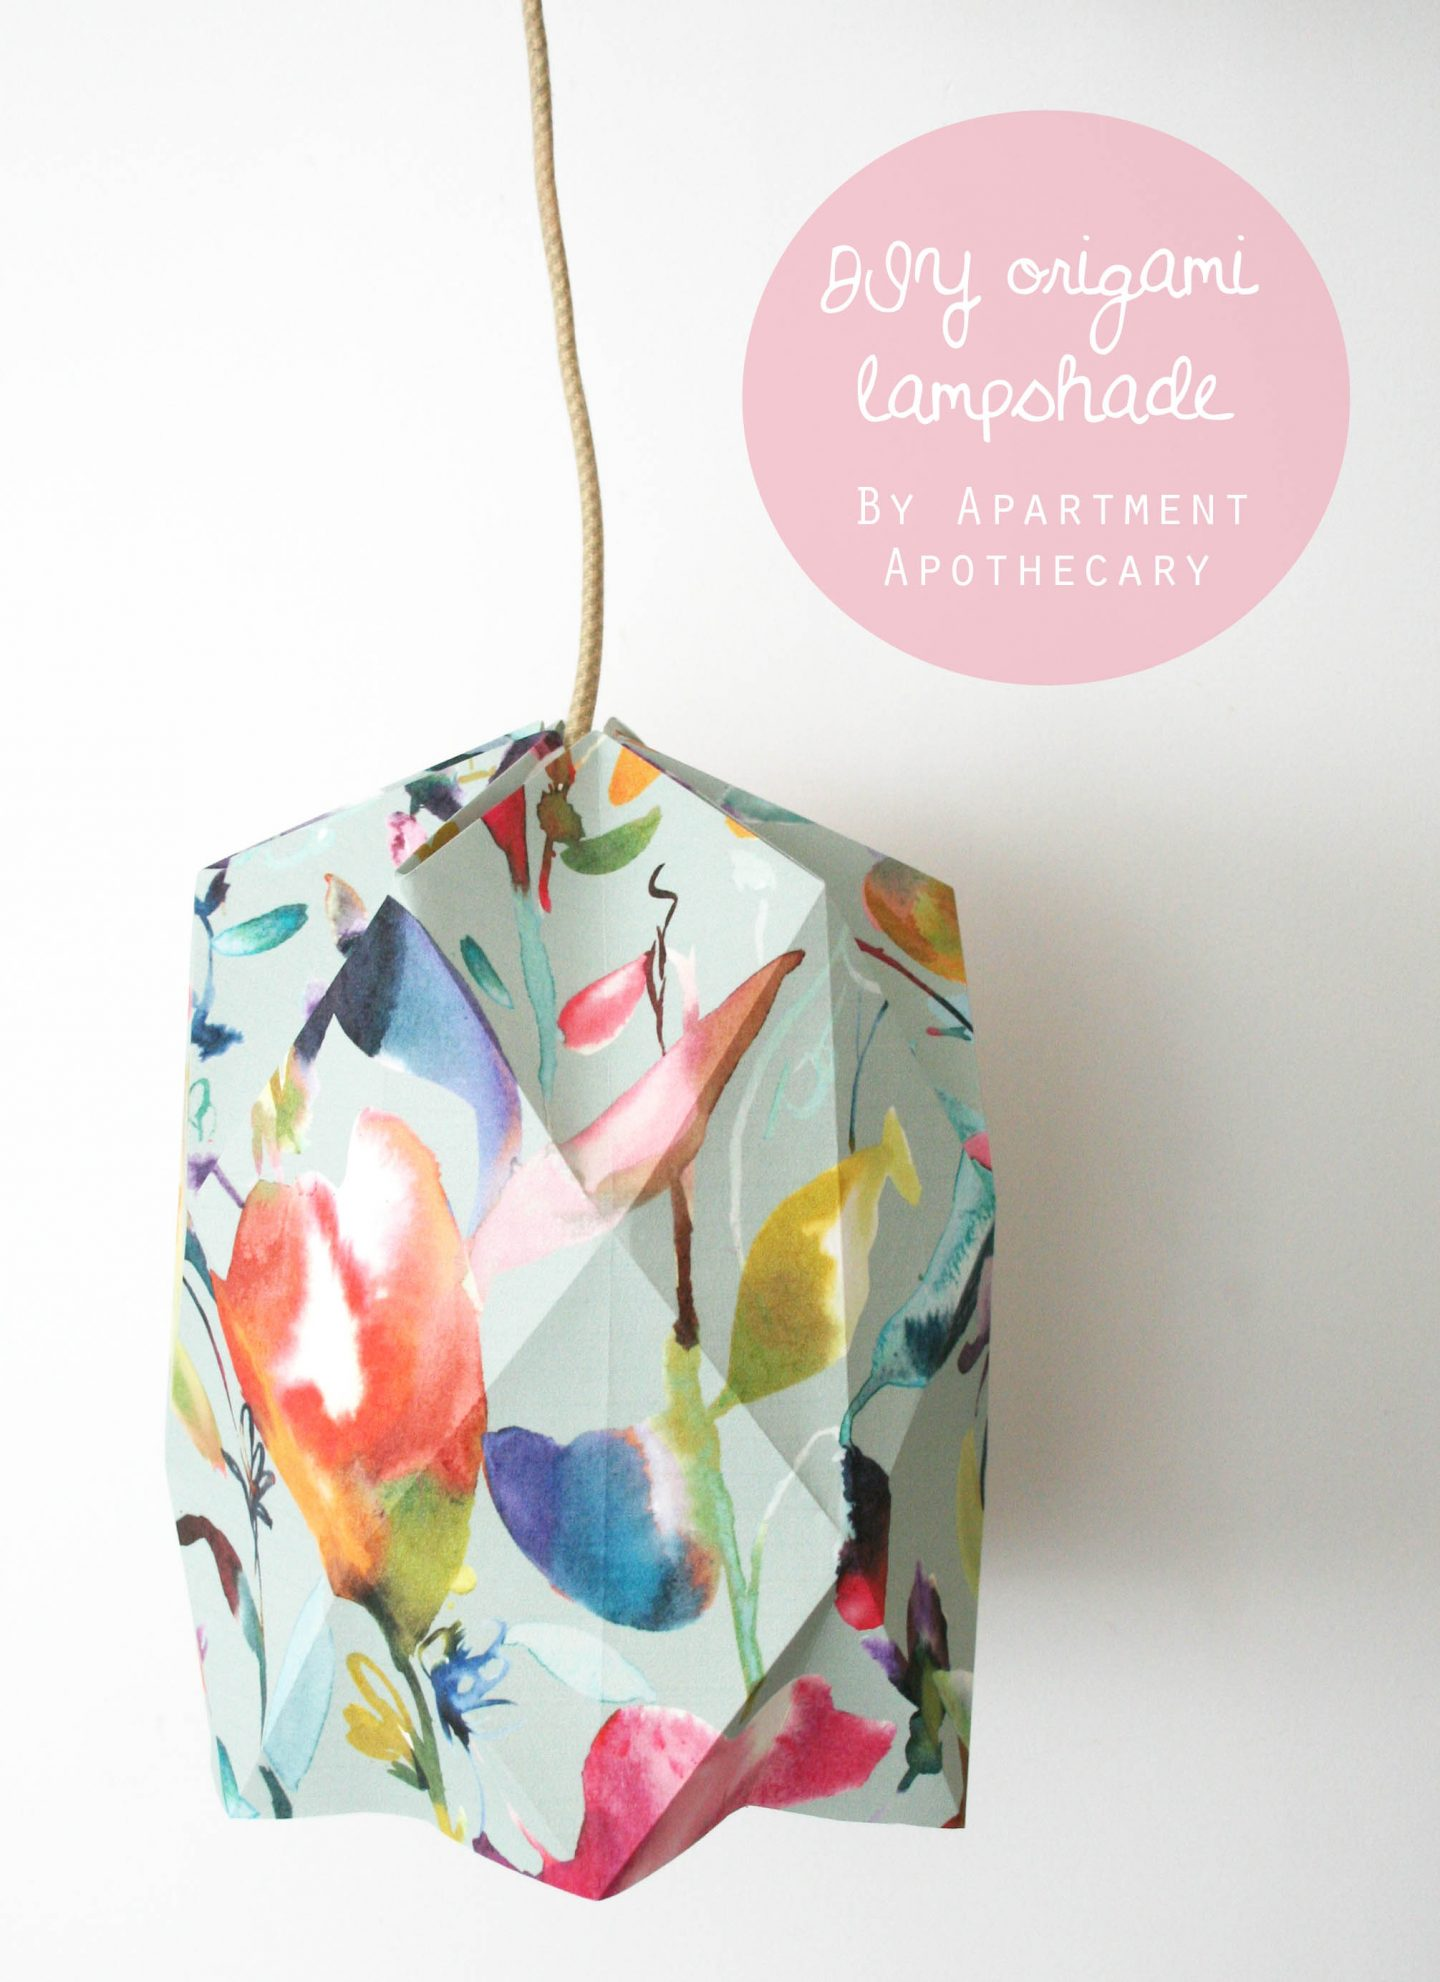 How to make an origami lampshade out of wallpaper | Quick and simple wallpaper crafts | Apartment Apothecary